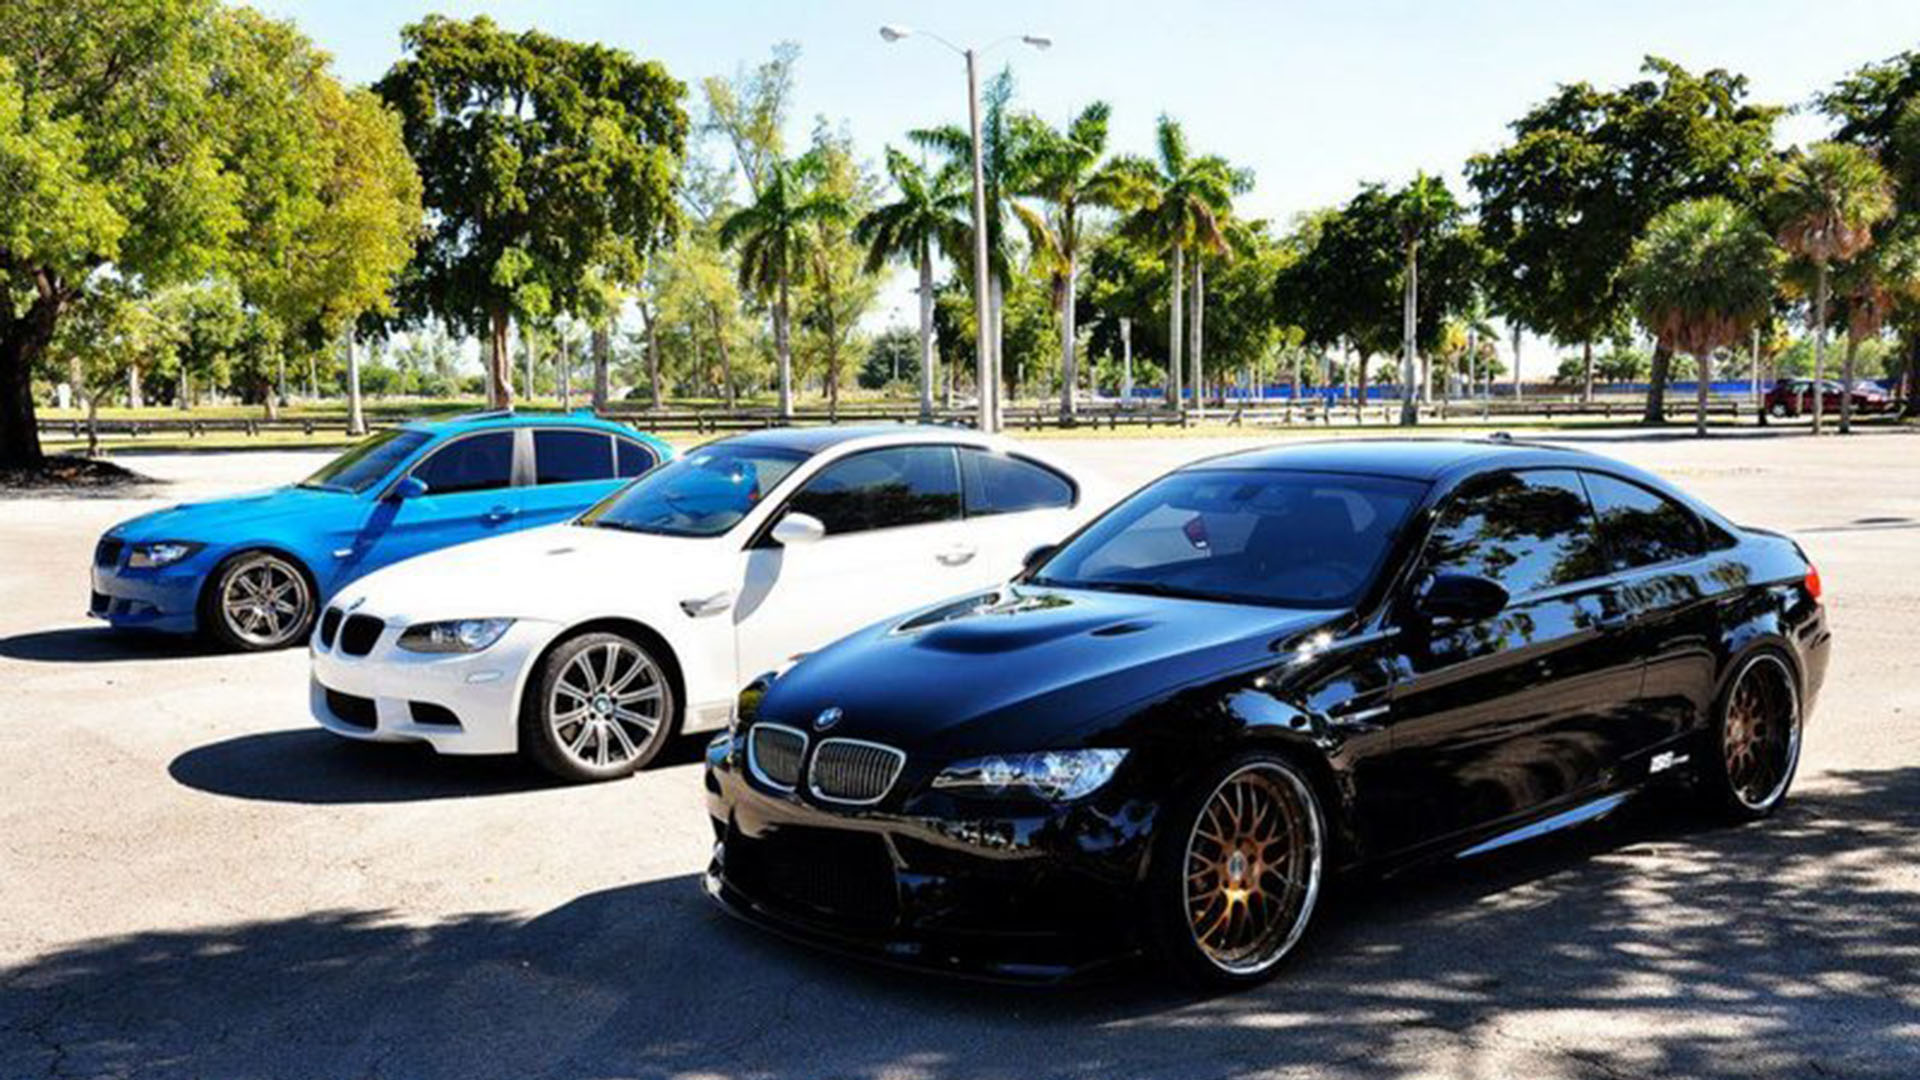 2013 bmw m3 e90 pictures information and specs auto - 2013 bmw 335i coupe specs ...